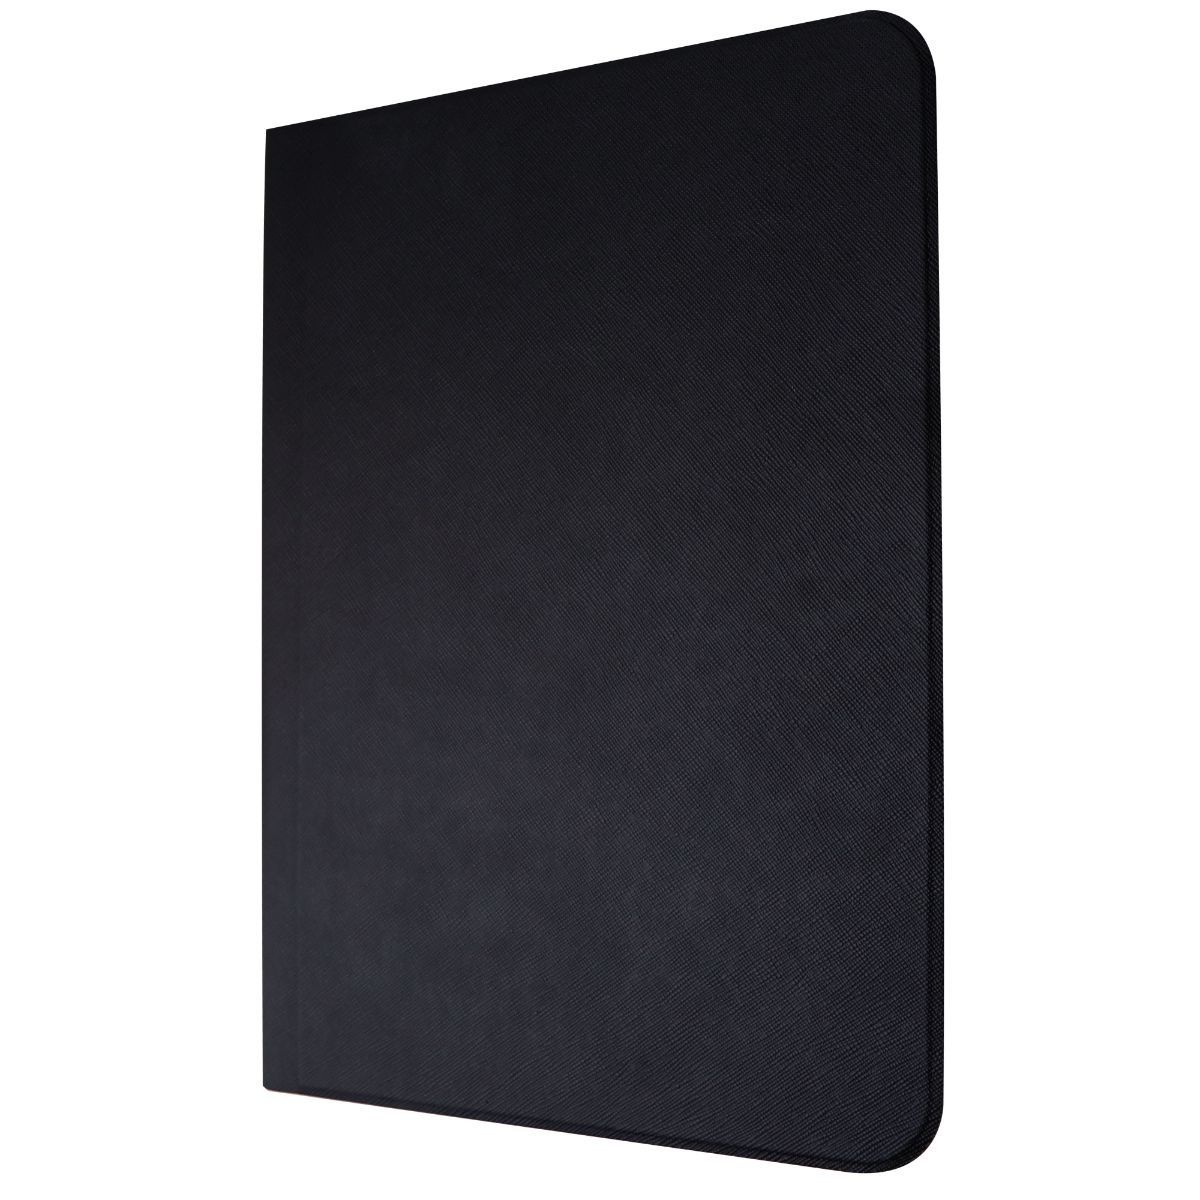 PureGear Universal Folio Case for 9 to 10 Inch Tablets - Black